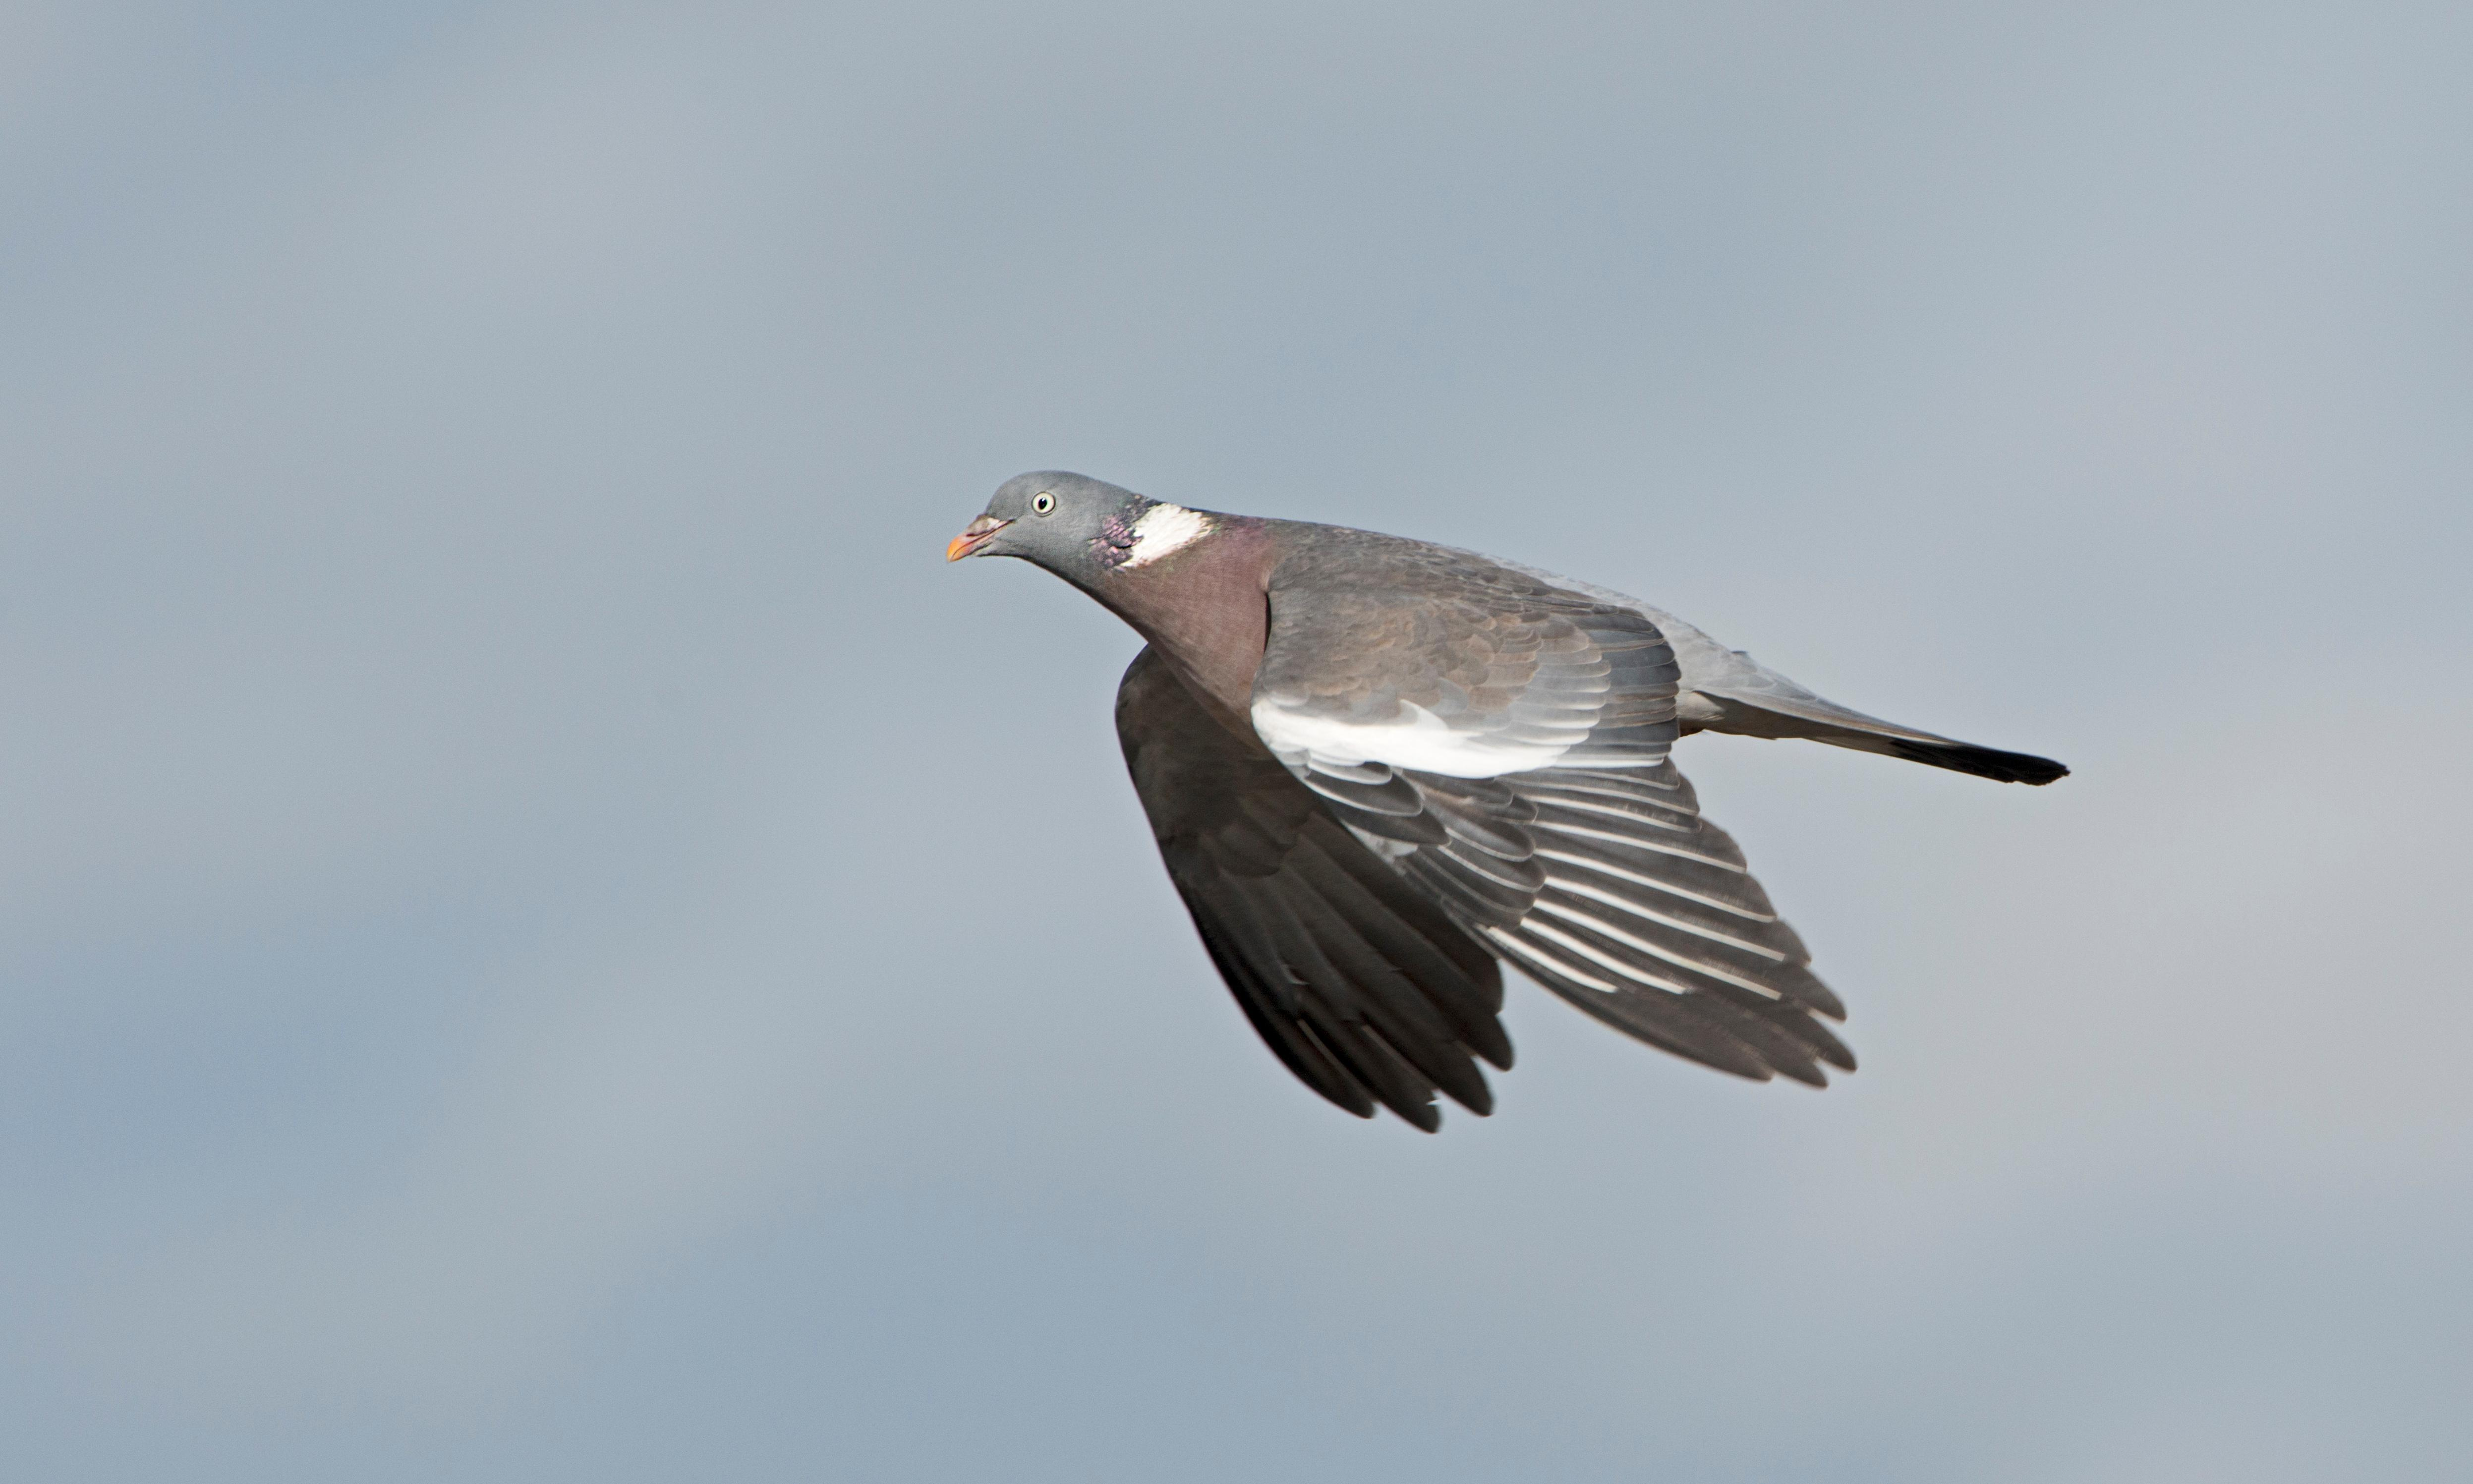 Woodpigeons and crows can no longer be freely killed in England